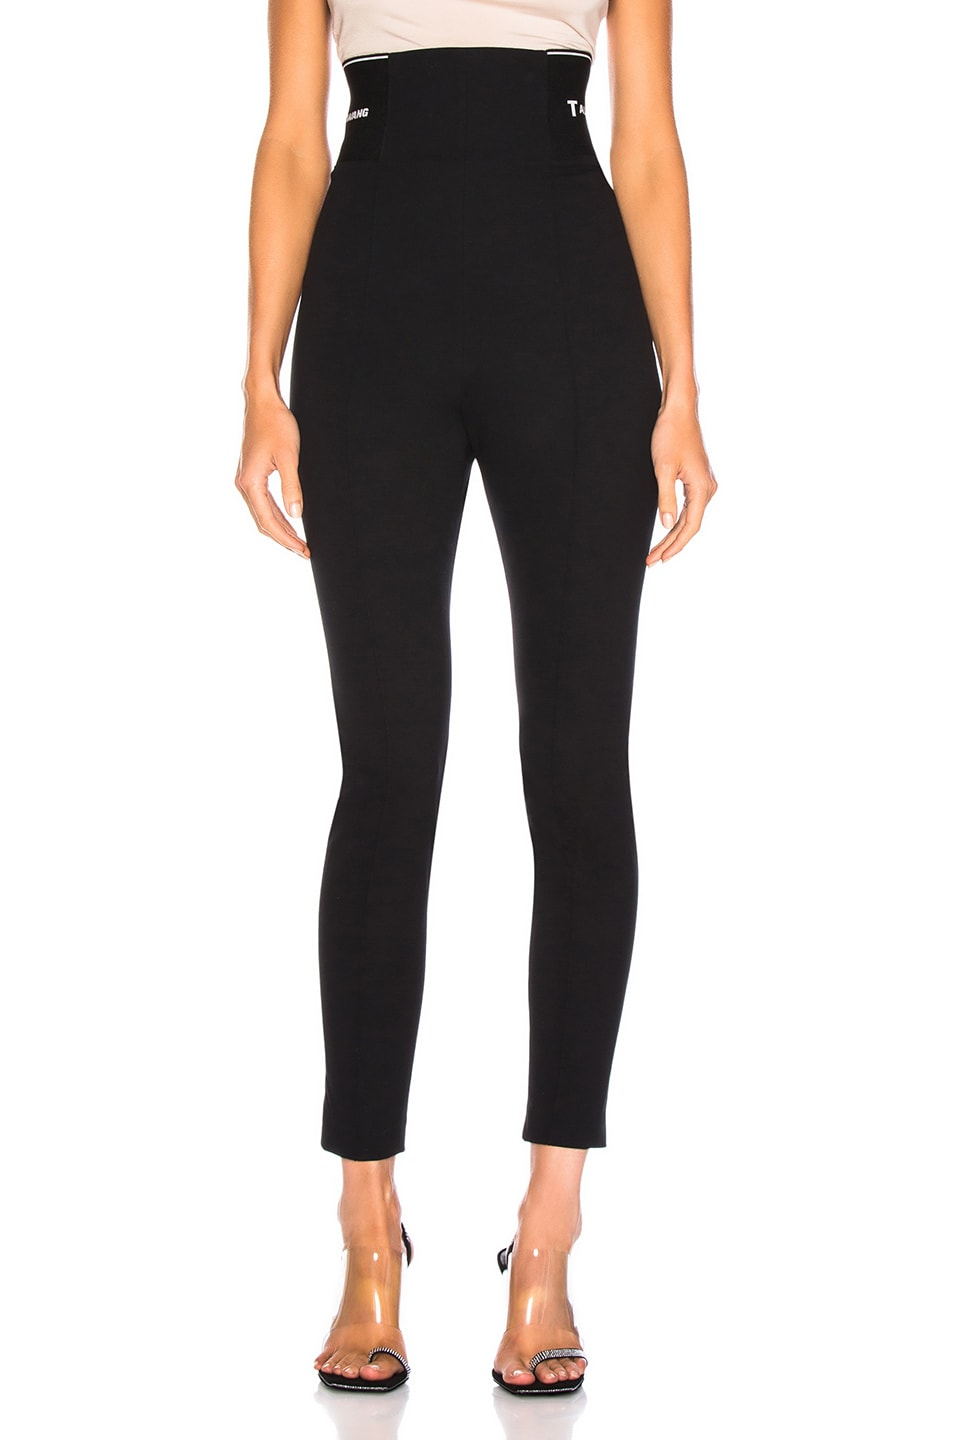 dacf8bdb80a89 Image 2 of T by Alexander Wang Suiting Legging in Black